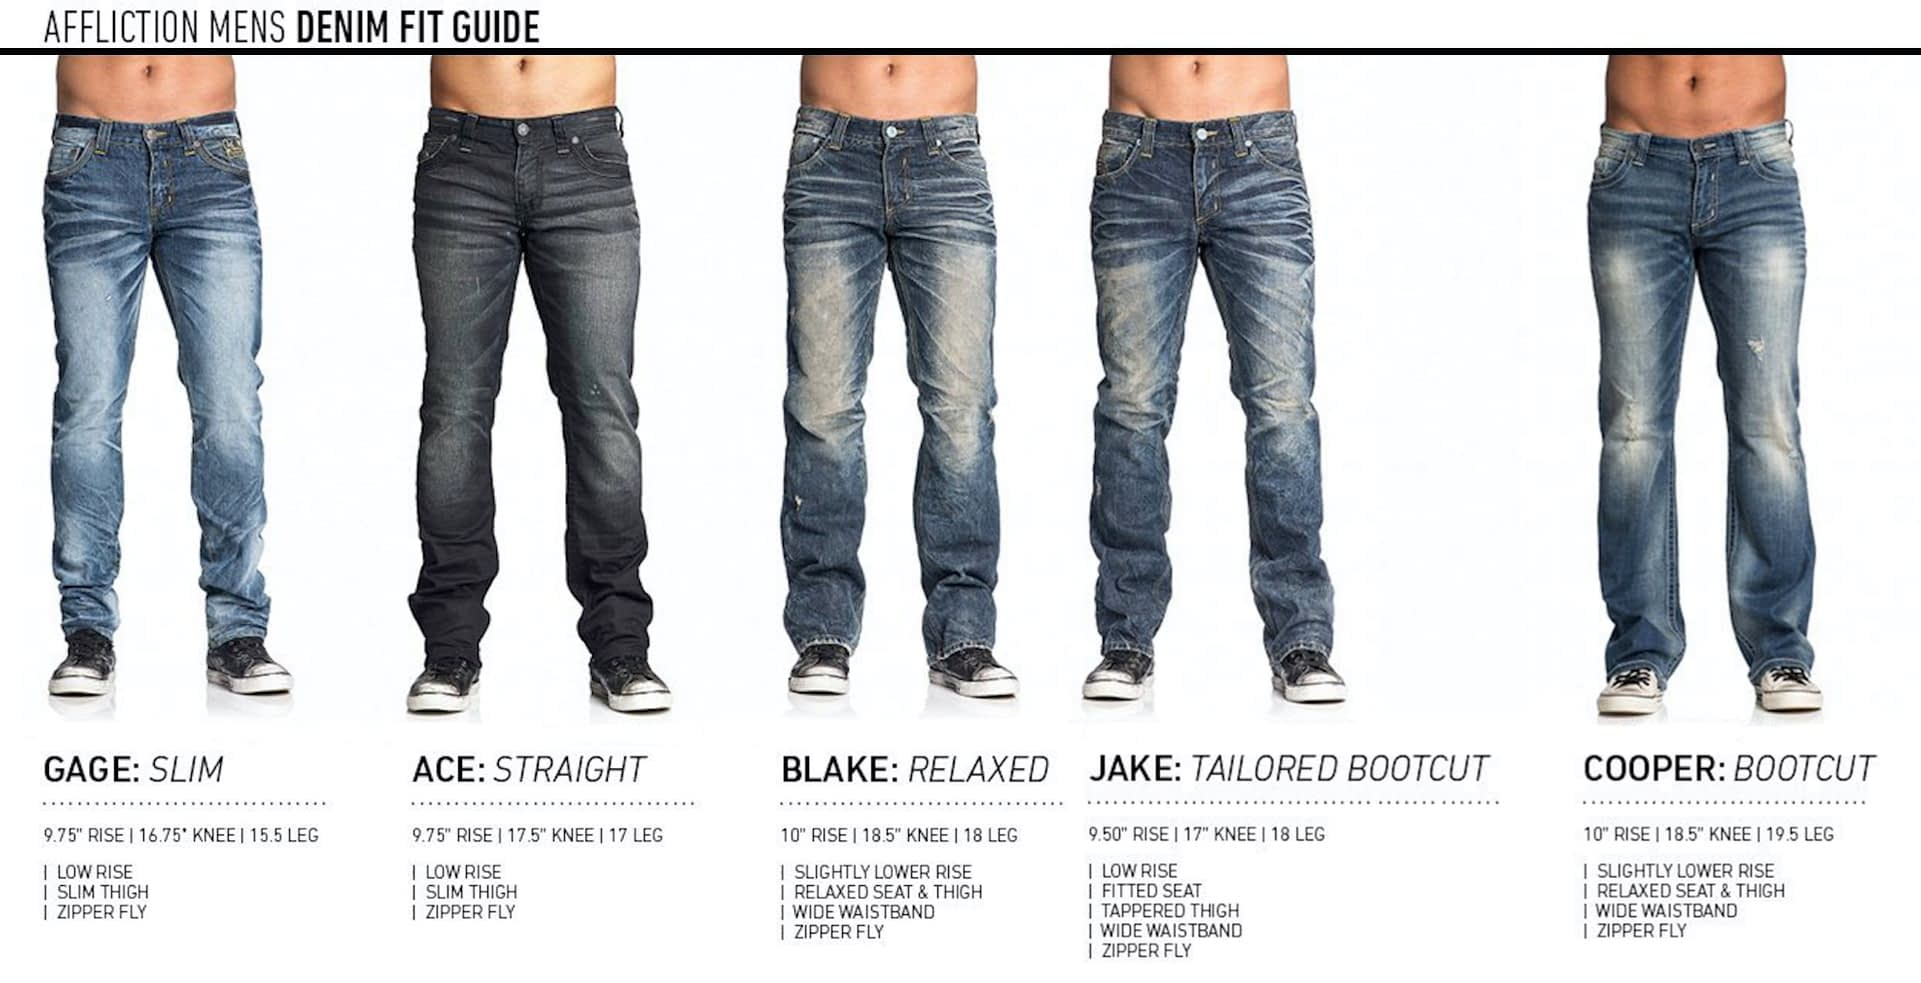 Guide des tailles jeans - Affliction Clothing - Homme